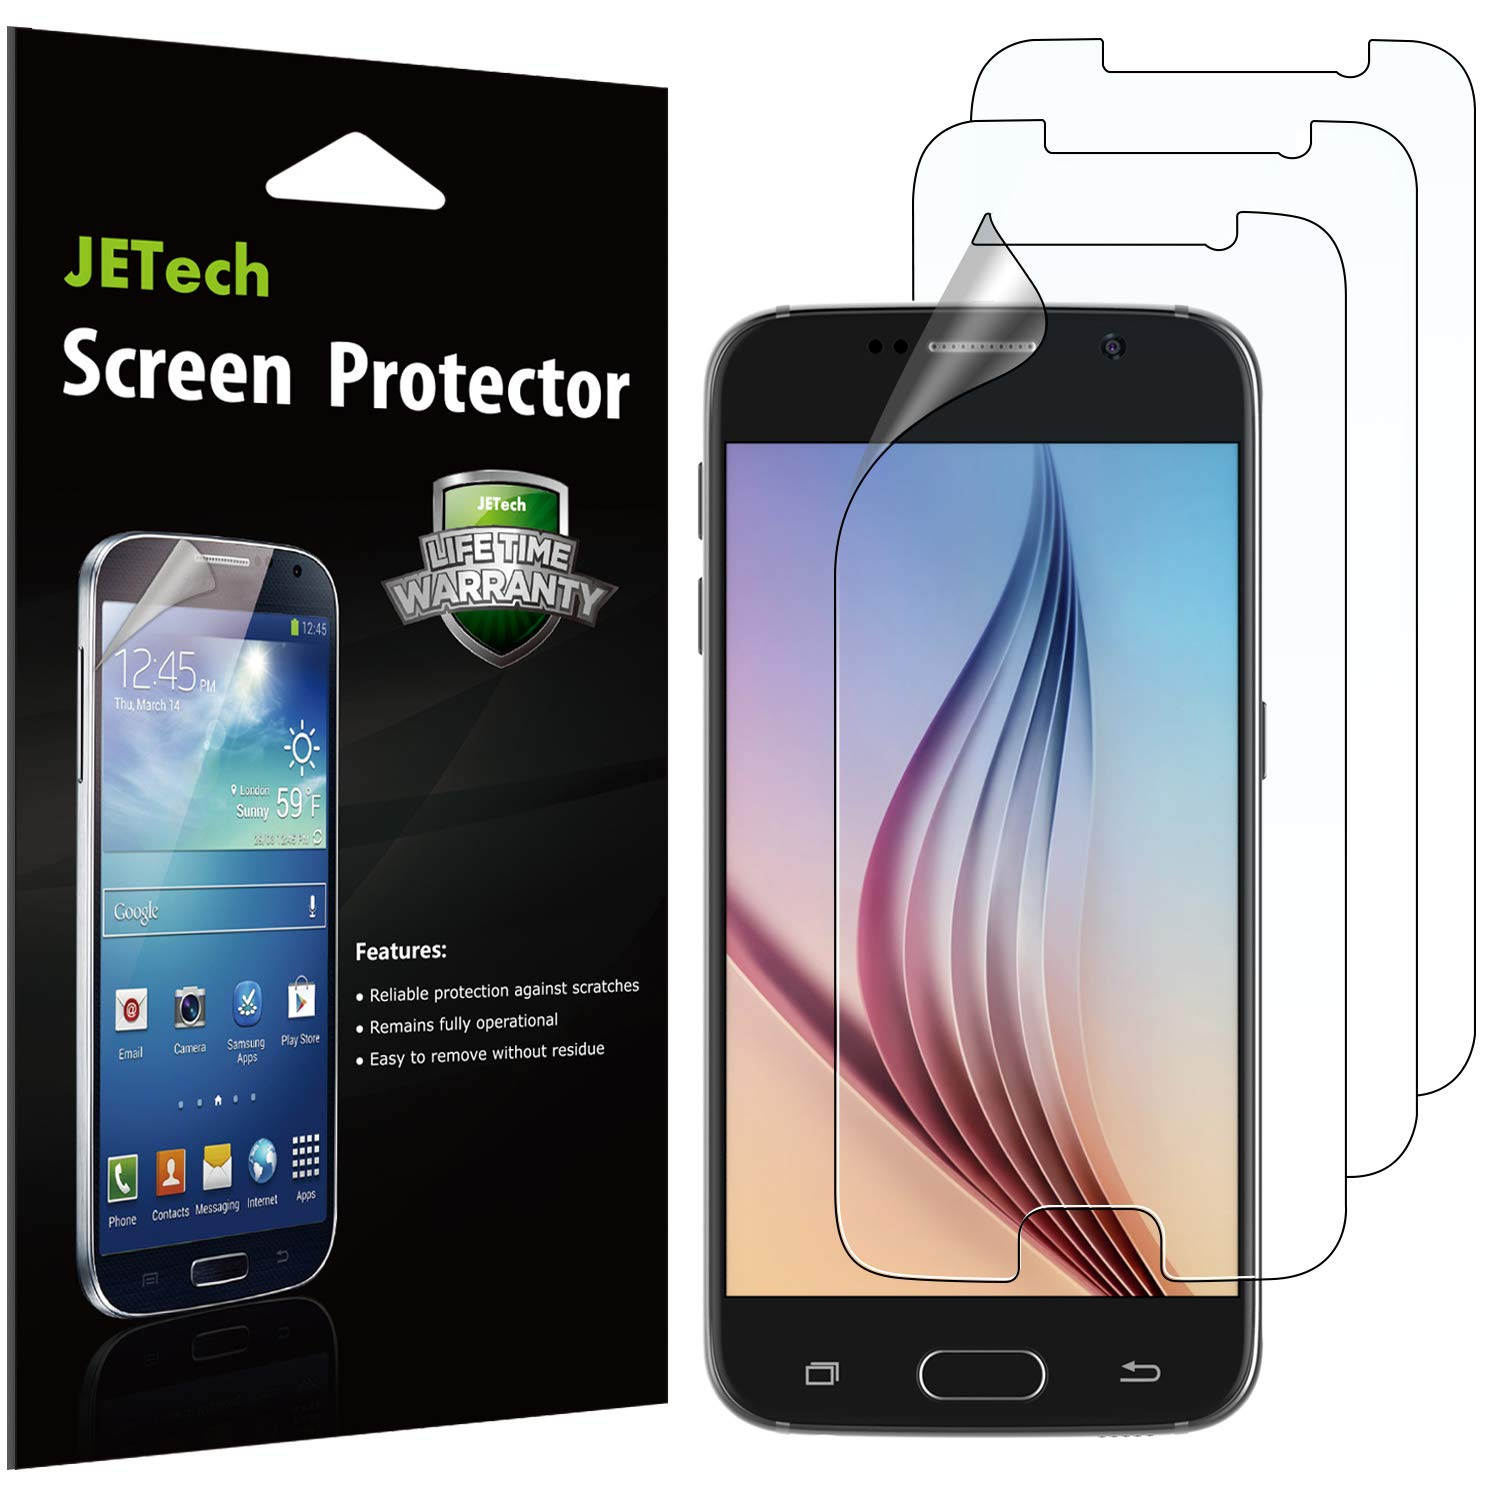 JETech Screen Protector for Samsung Galaxy S6, PET Film, 3-Pack